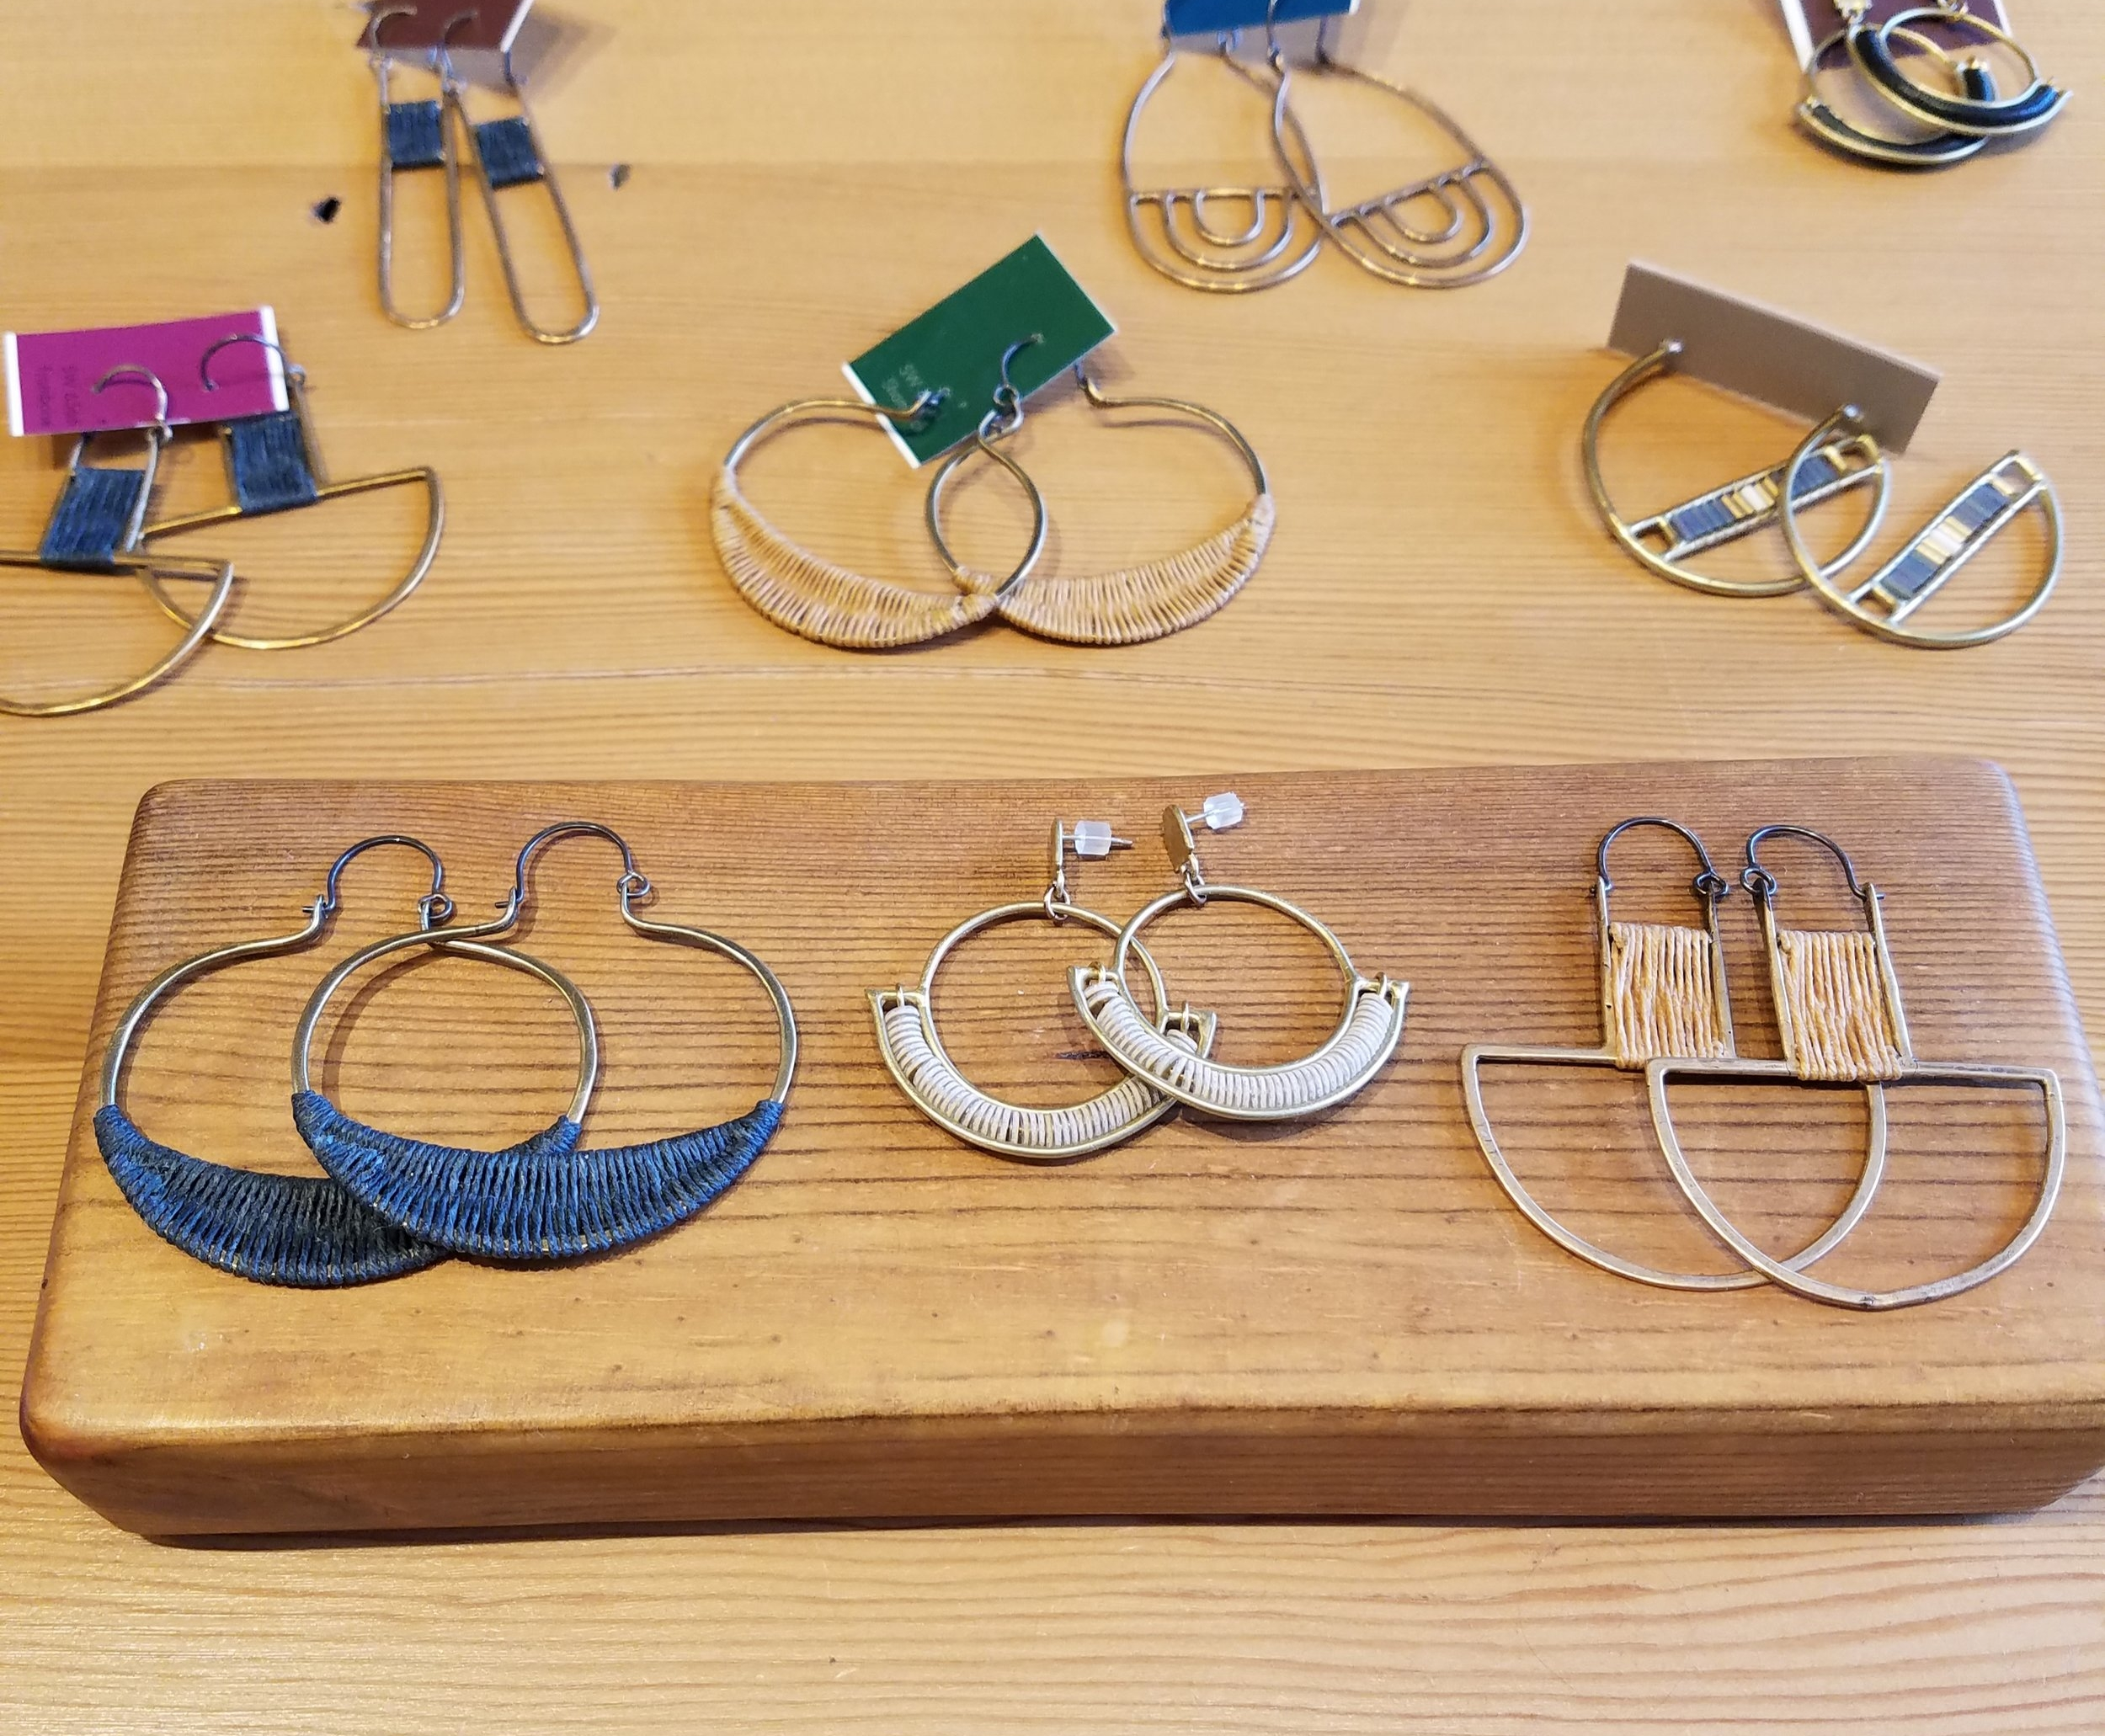 Jewelry is always a great stocking stuffer! We carry many different styles of earrings, rings, and necklaces in price ranges for any budget. *Earrings on wood block from L to R: $127, $90, $103